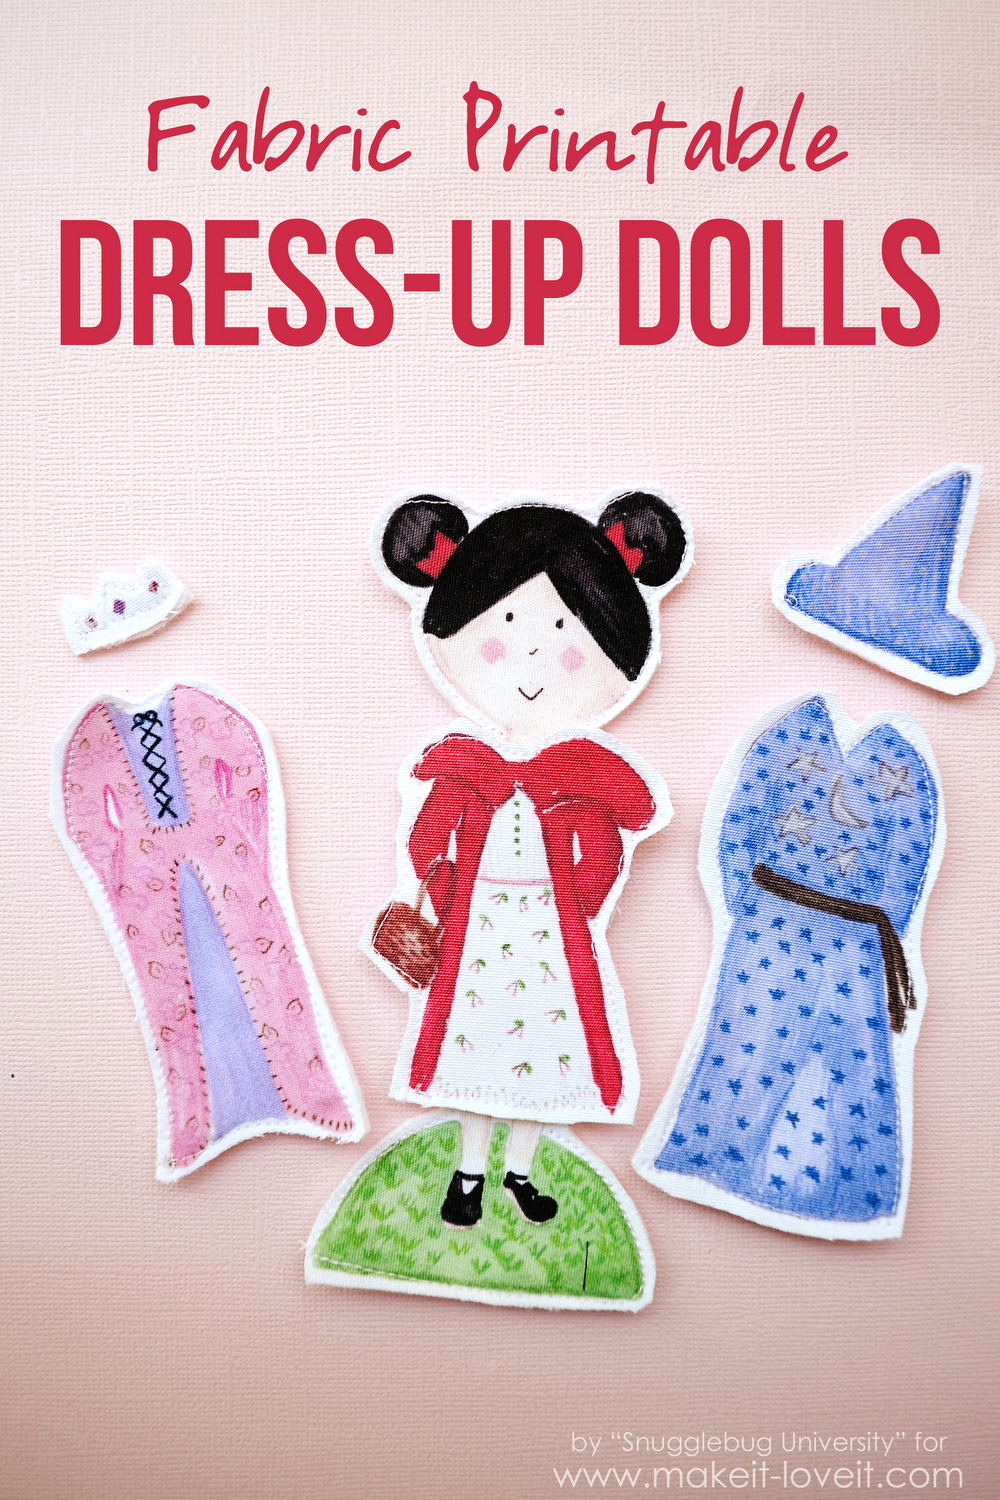 Fabric Printable DRESS-UP DOLLS....yes, using your printer at home! | via Make It and Love It